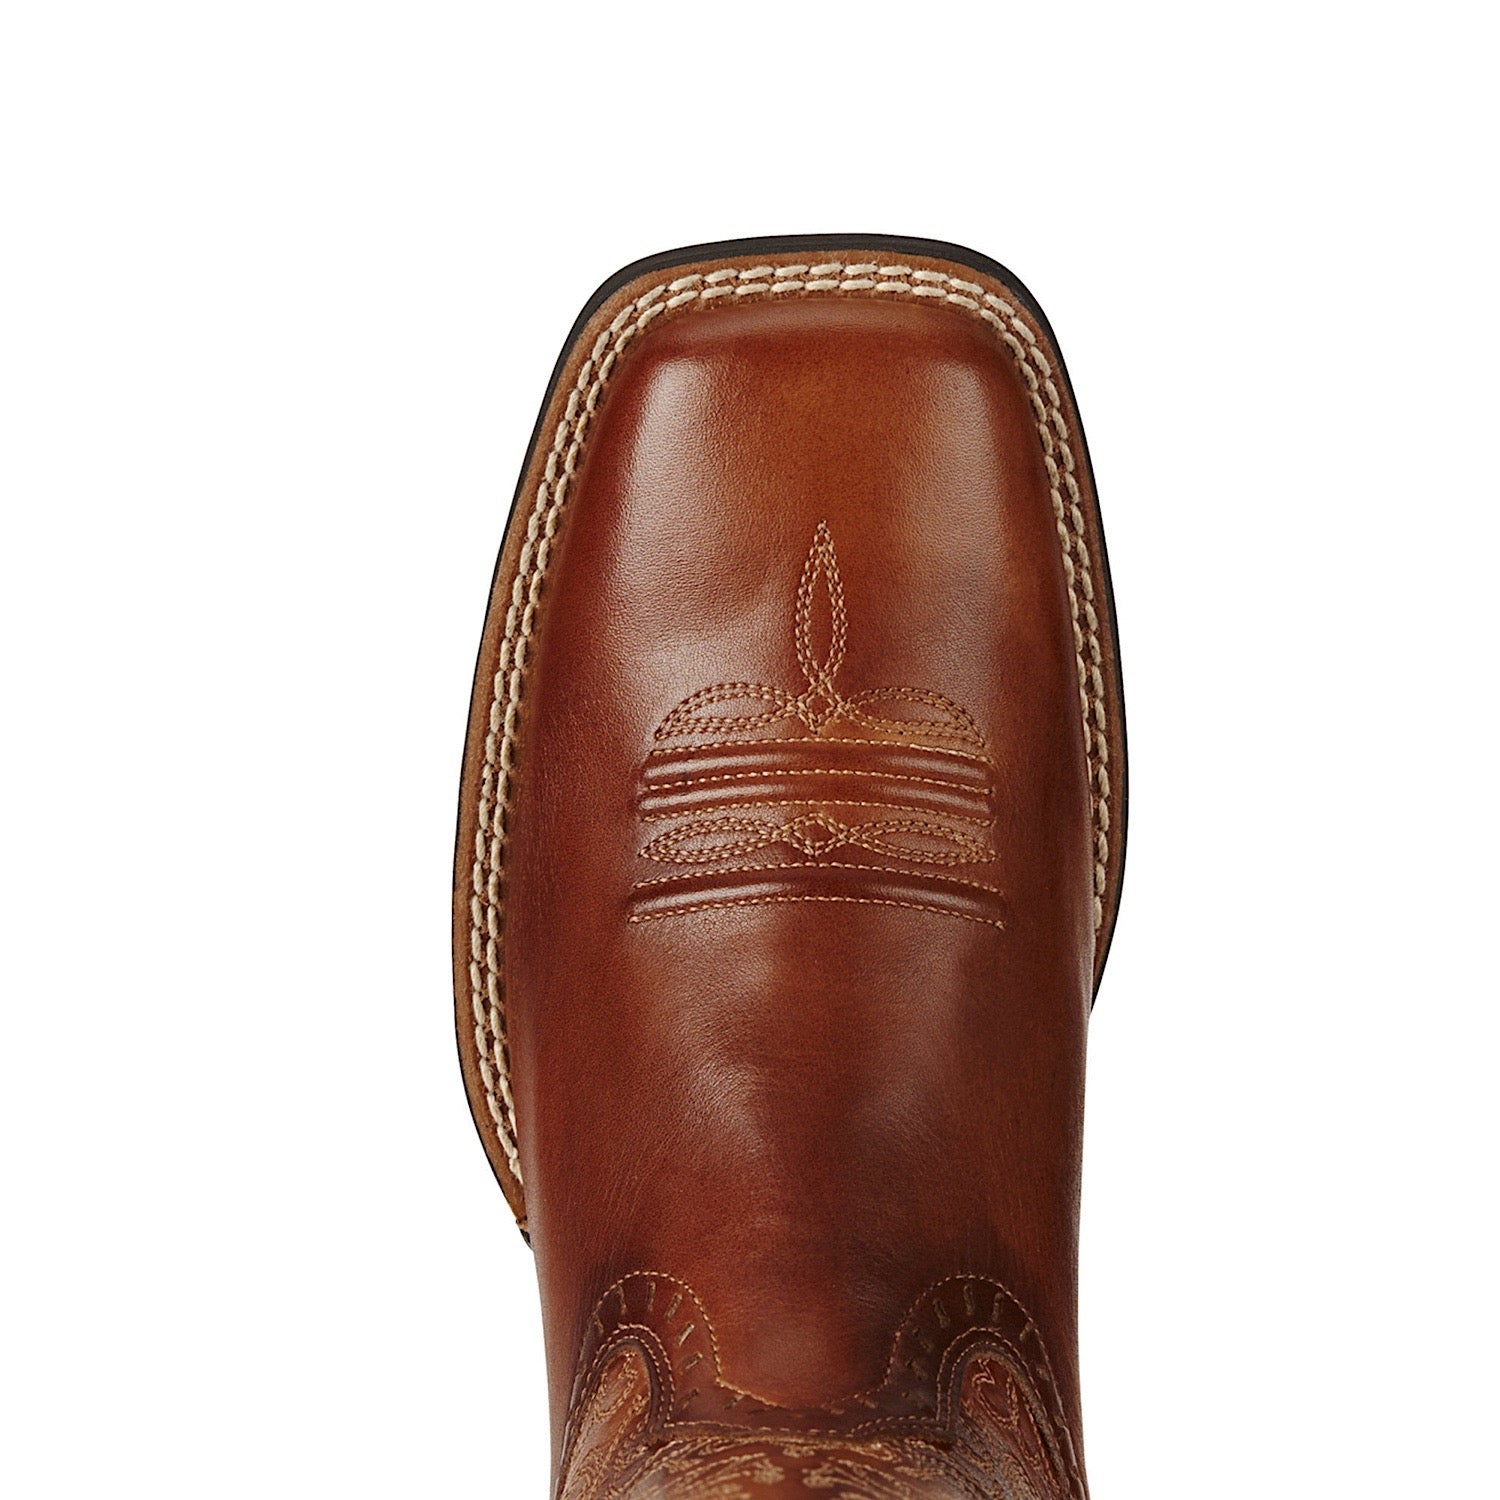 00f52ac66ef Ariat Women's Round Up Remuda Western Boot Naturally Rich